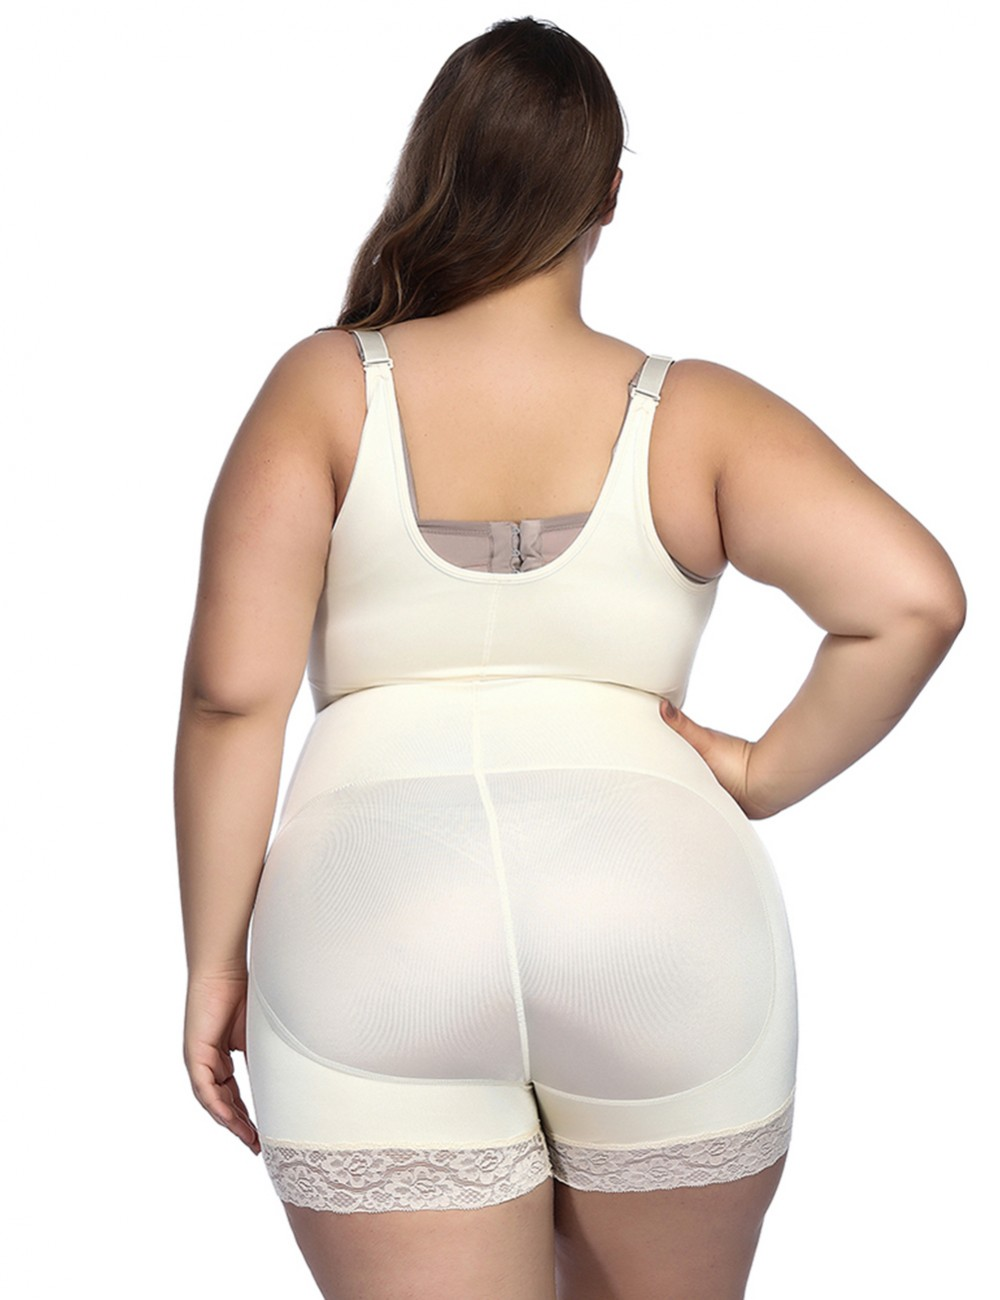 Zip Hooks Latex Open Crotch Nude Body Shaper Big Size Potential Reduction